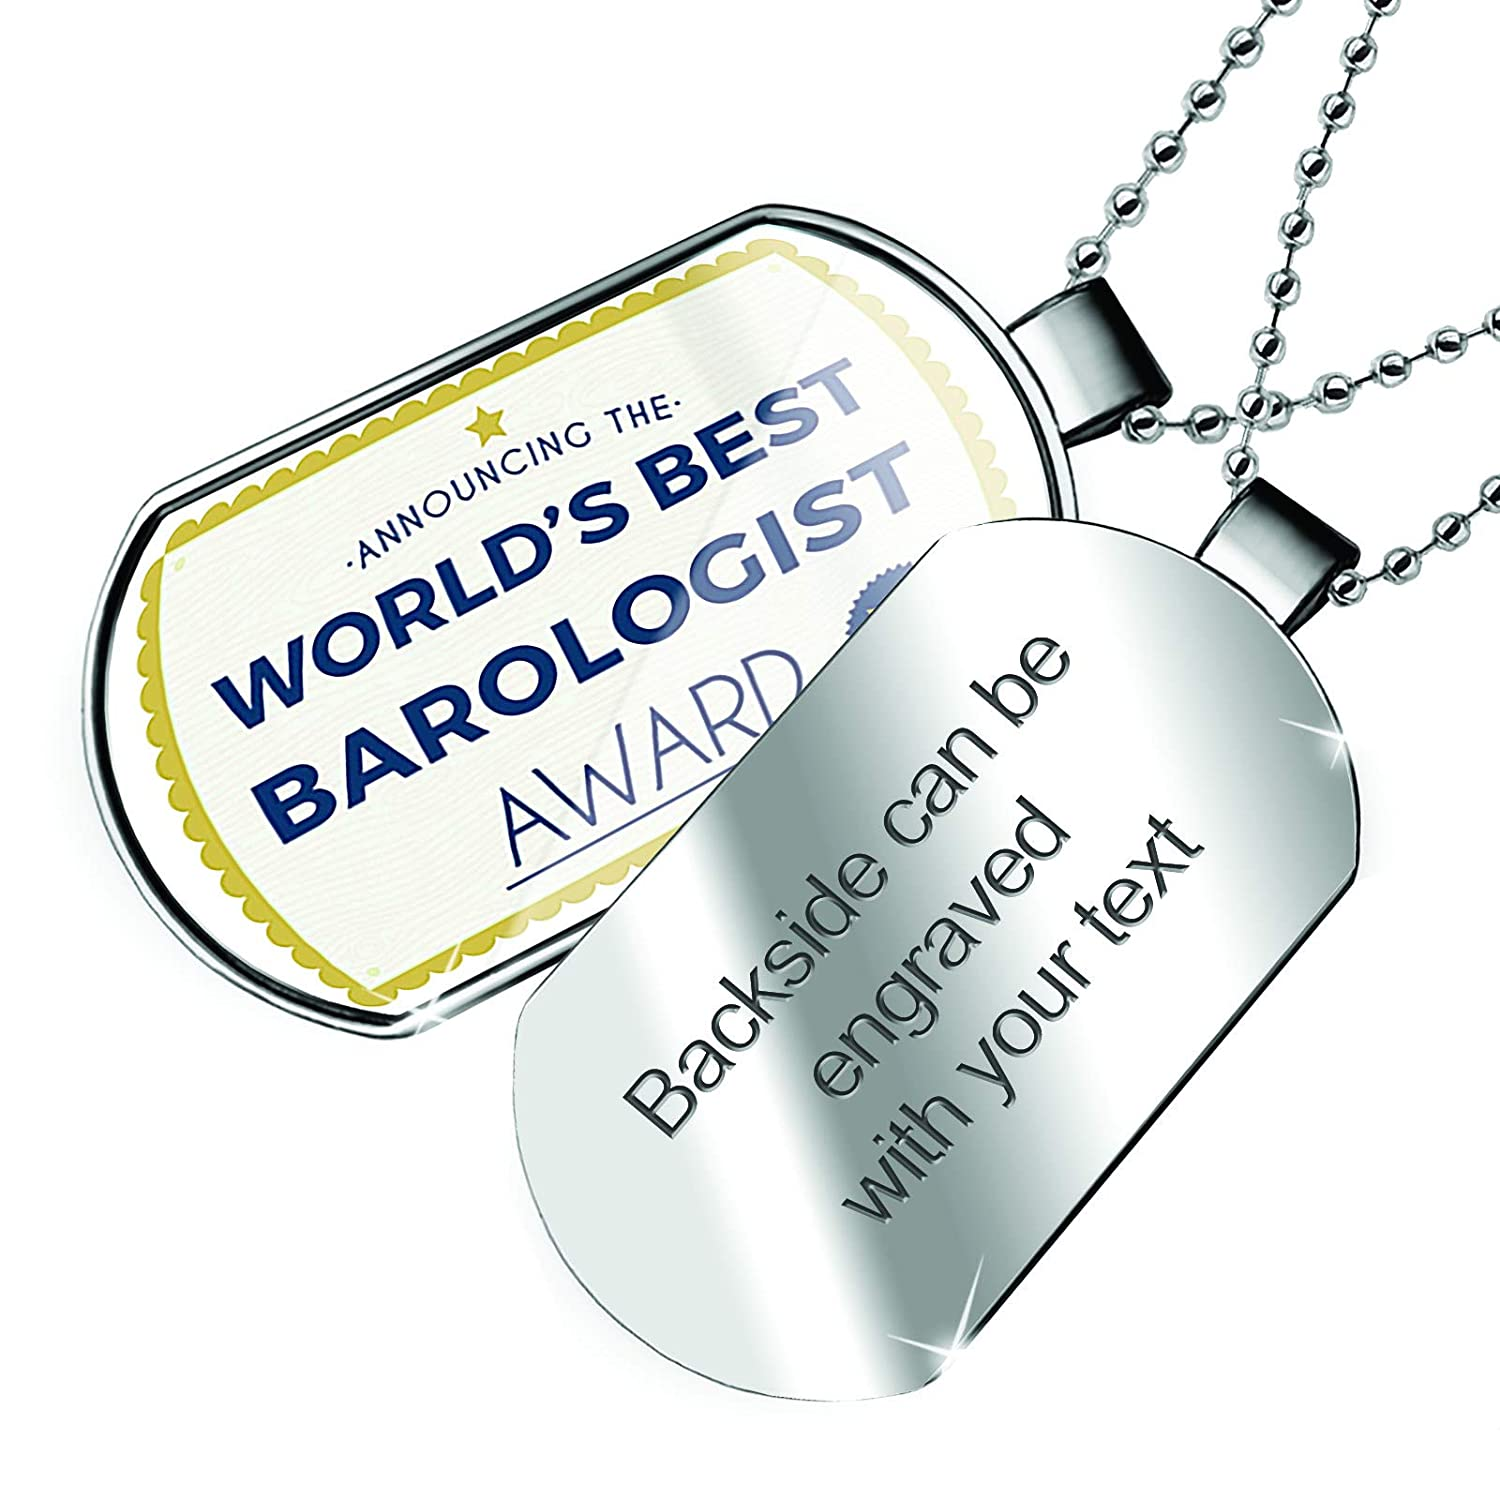 NEONBLOND Personalized Name Engraved Worlds Best Barologist Certificate Award Dogtag Necklace